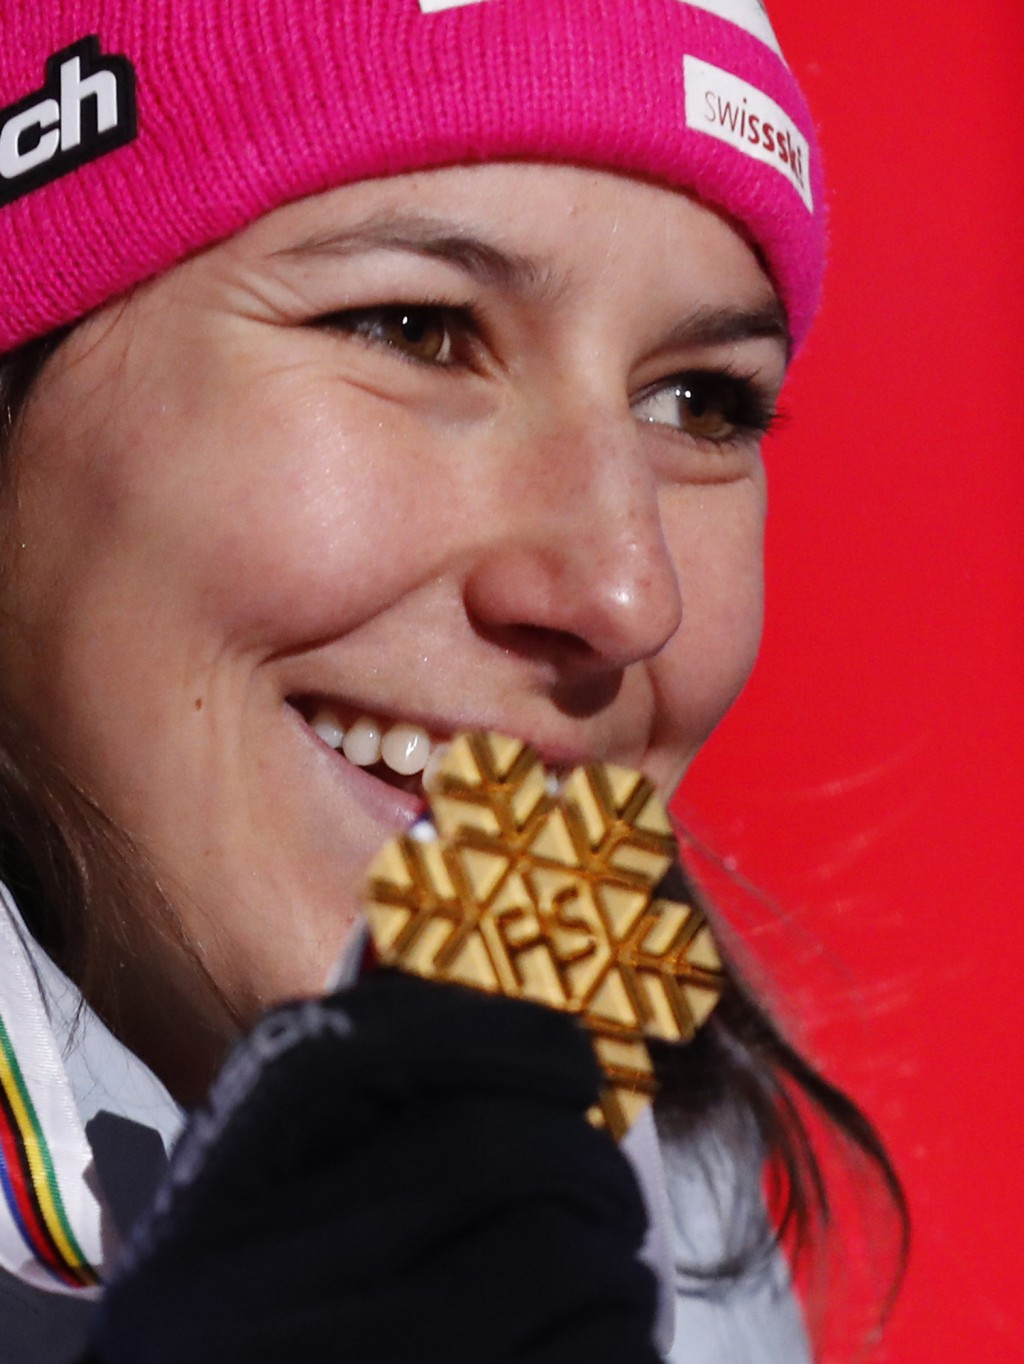 Switzerland's Wendy Holdener poses with her gold medal during the medal ceremony for the women's combined race, at the alpine ski World Championships